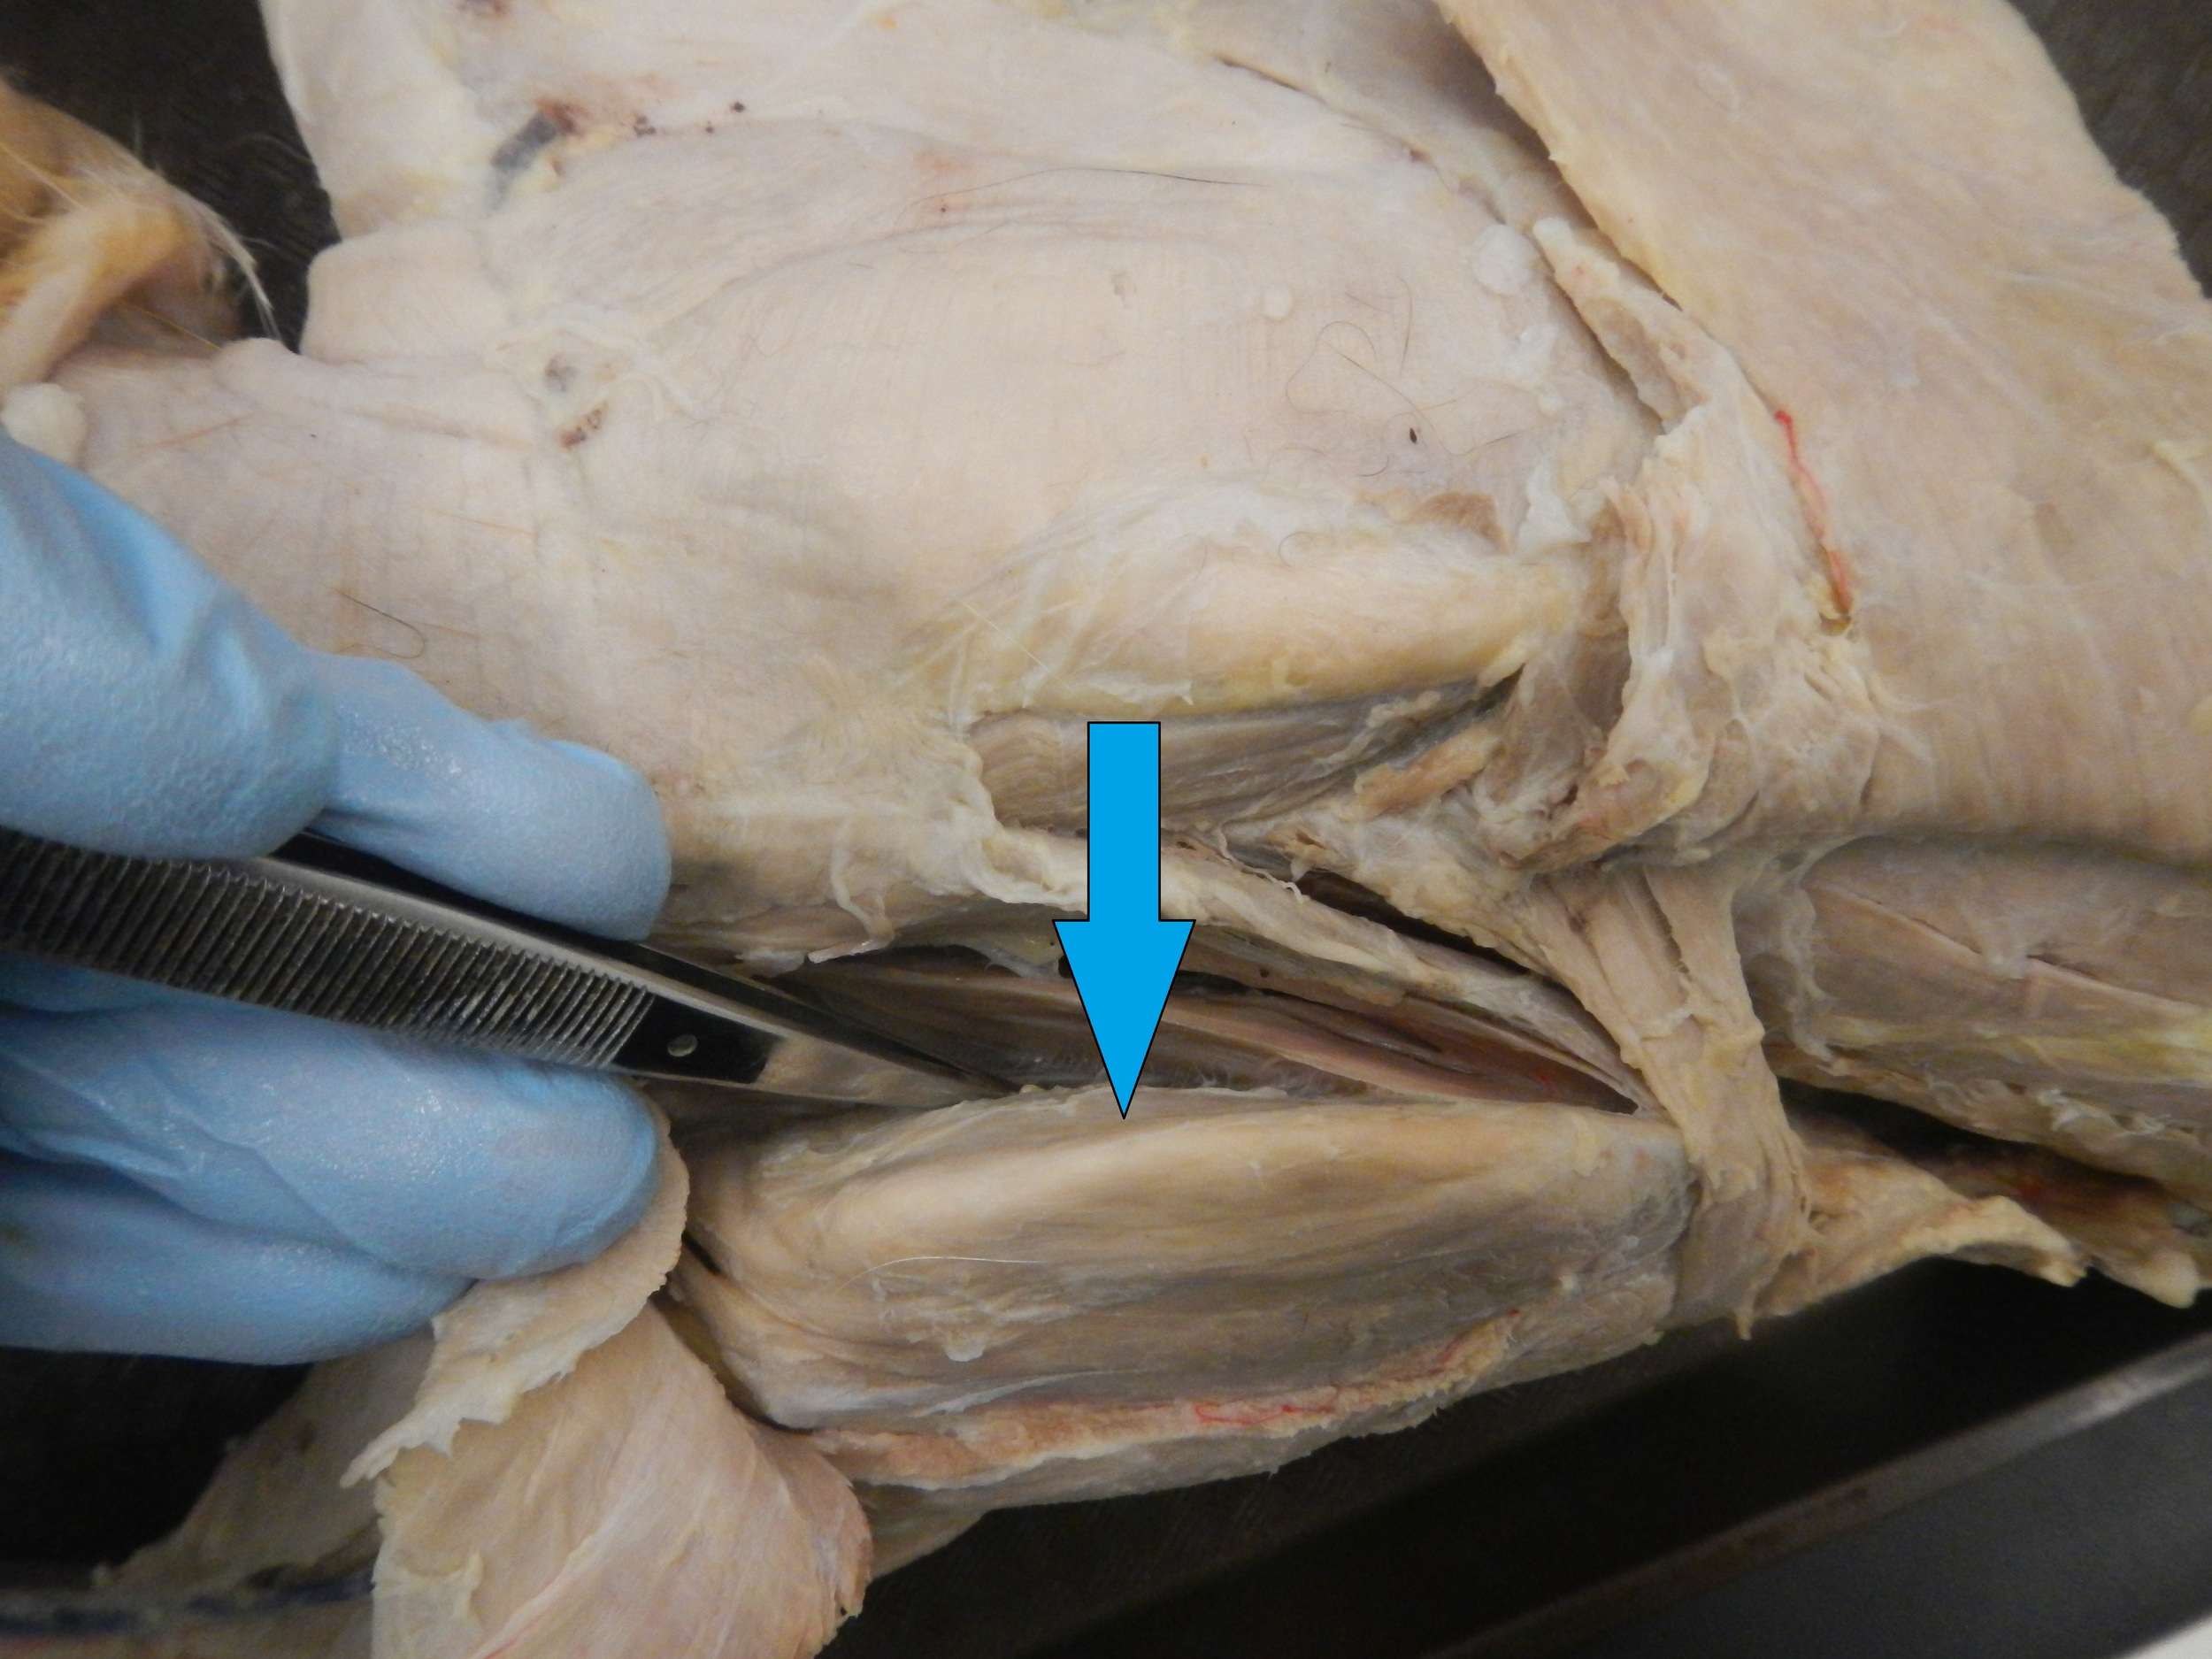 Subscapularis   O - Subscapular fossa of scapula  I - Lesser tubercle of humerus   F - Provides anterior strength to shoulder joint, adduction and medial rotation ofhumerus (internal rotation)